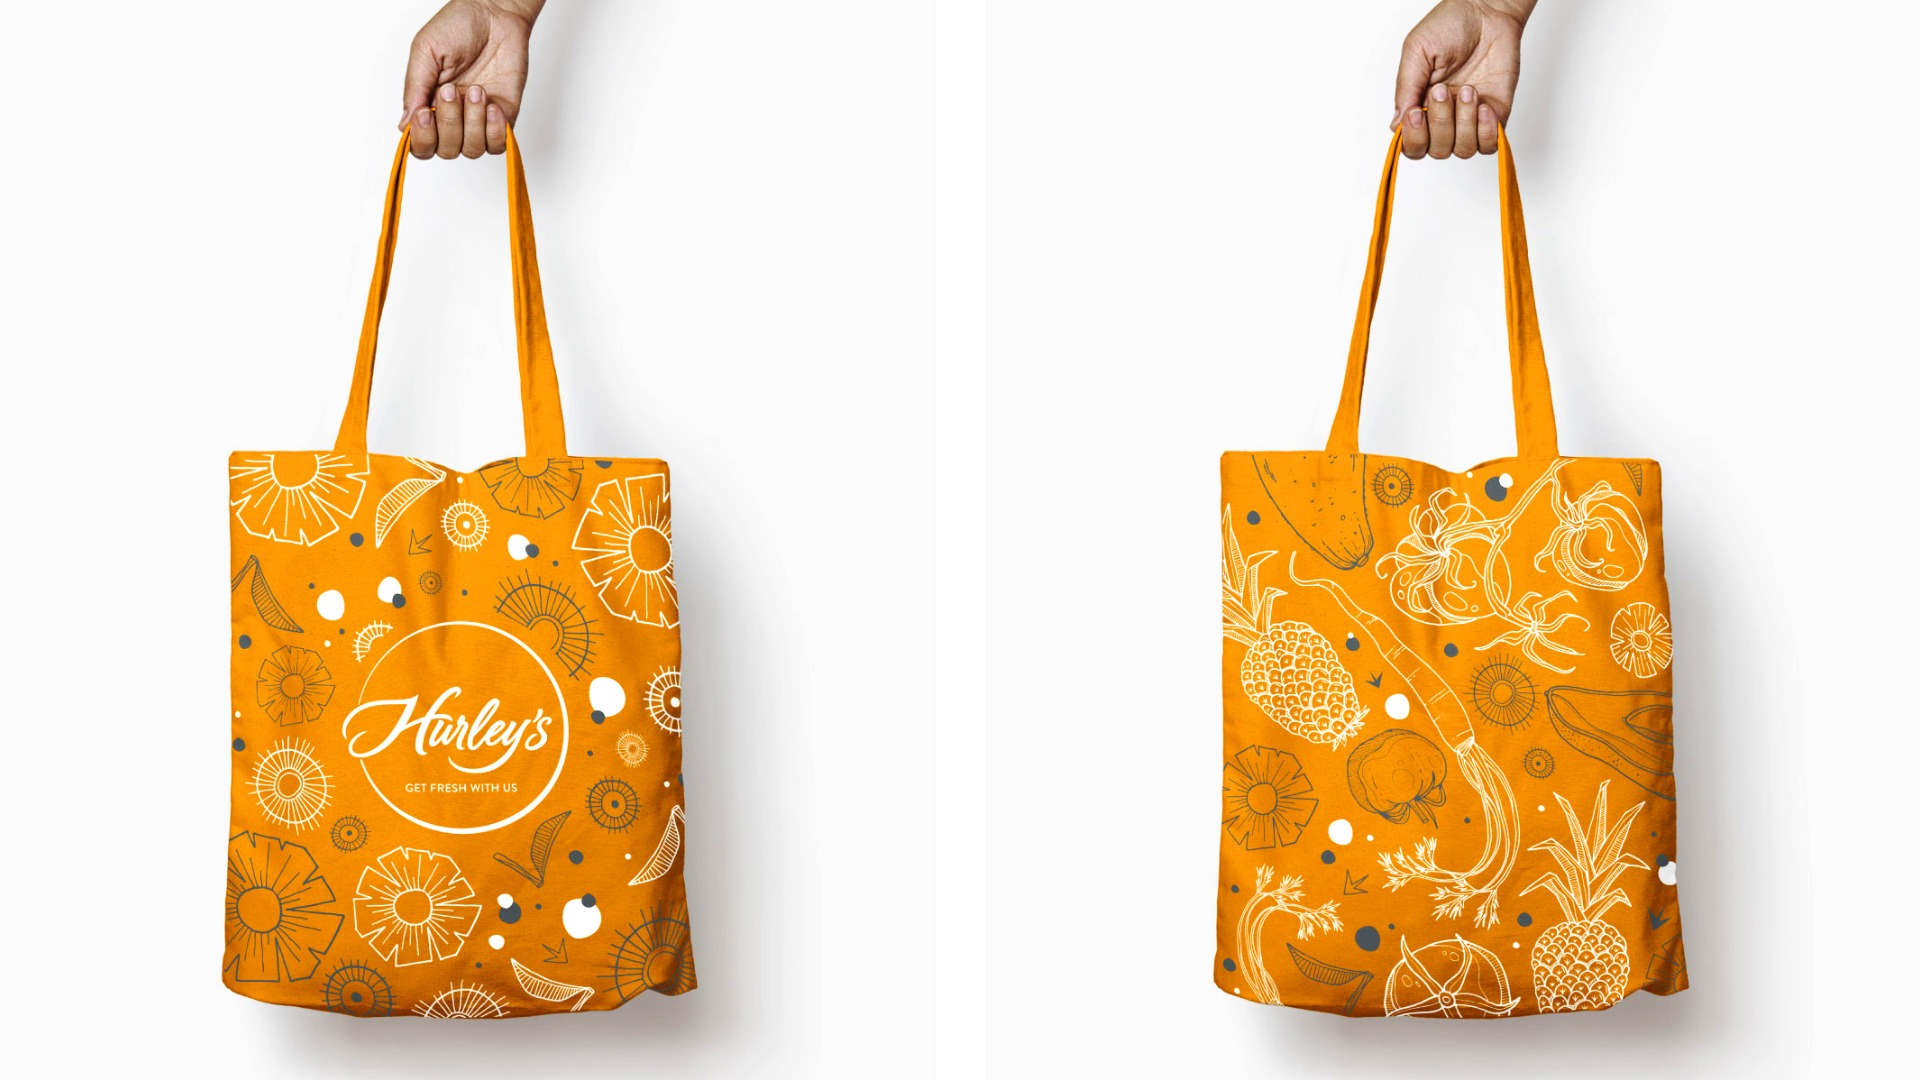 Hurley's Tote Bags